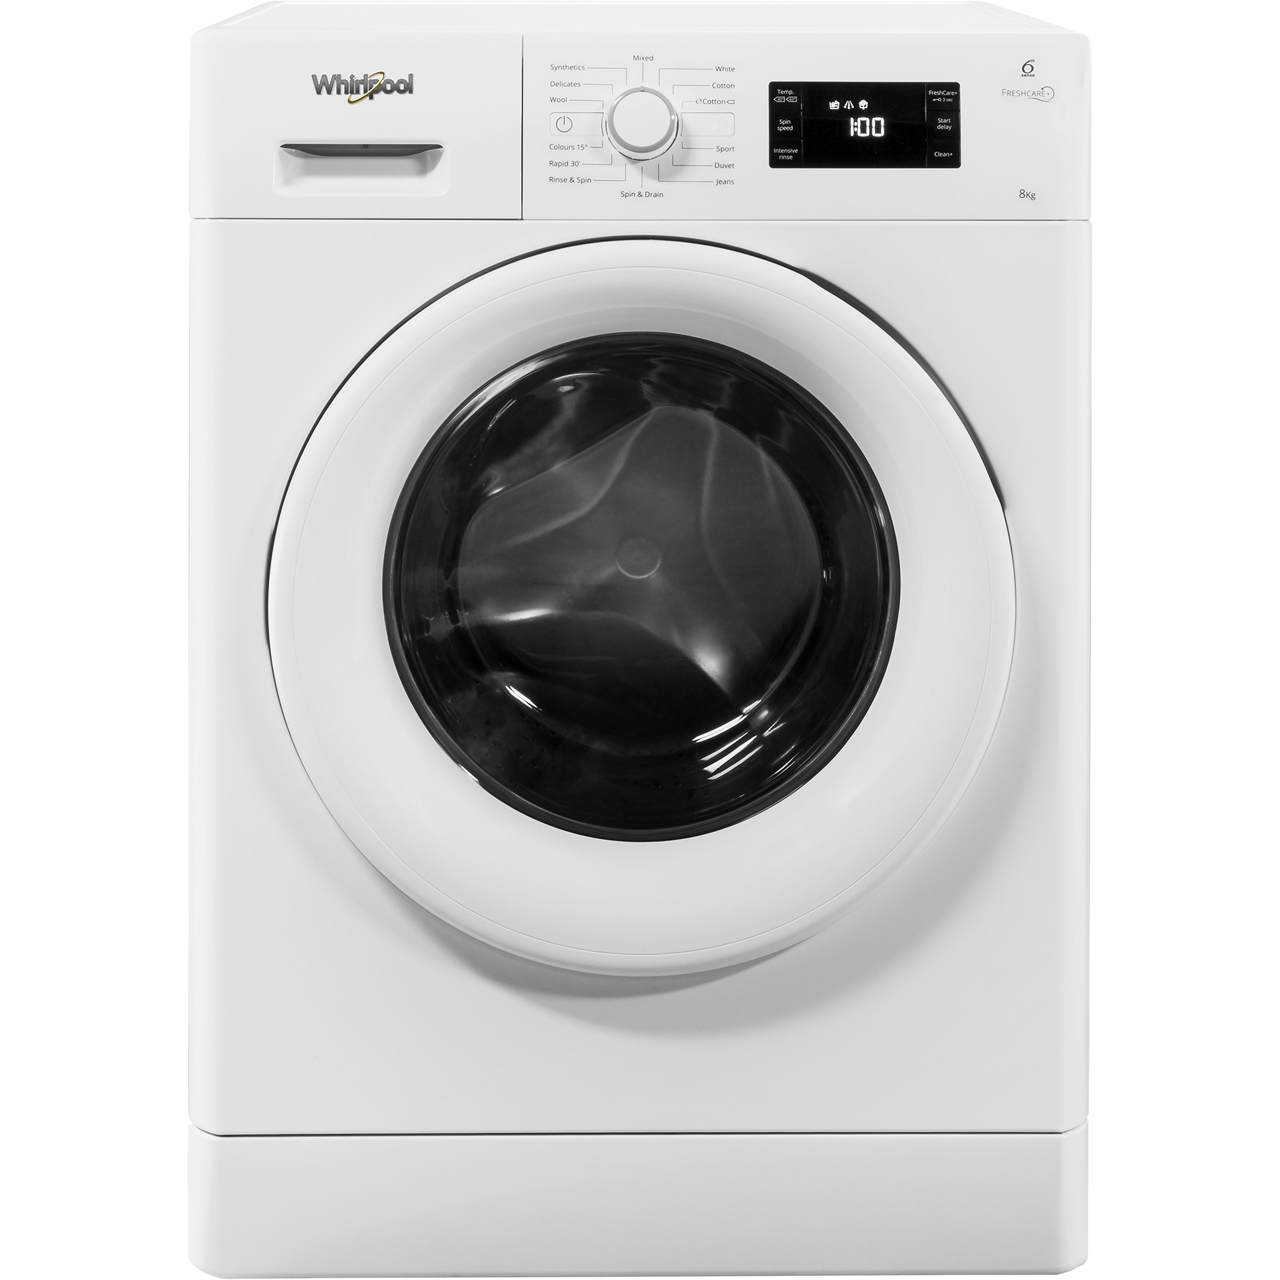 ceb1825cdb21d ... Whirlpool FreshCare+ FWG81496W 8Kg Washing Machine with 1400 rpm - White  - A+++ Rated - FWG81496W WH ...